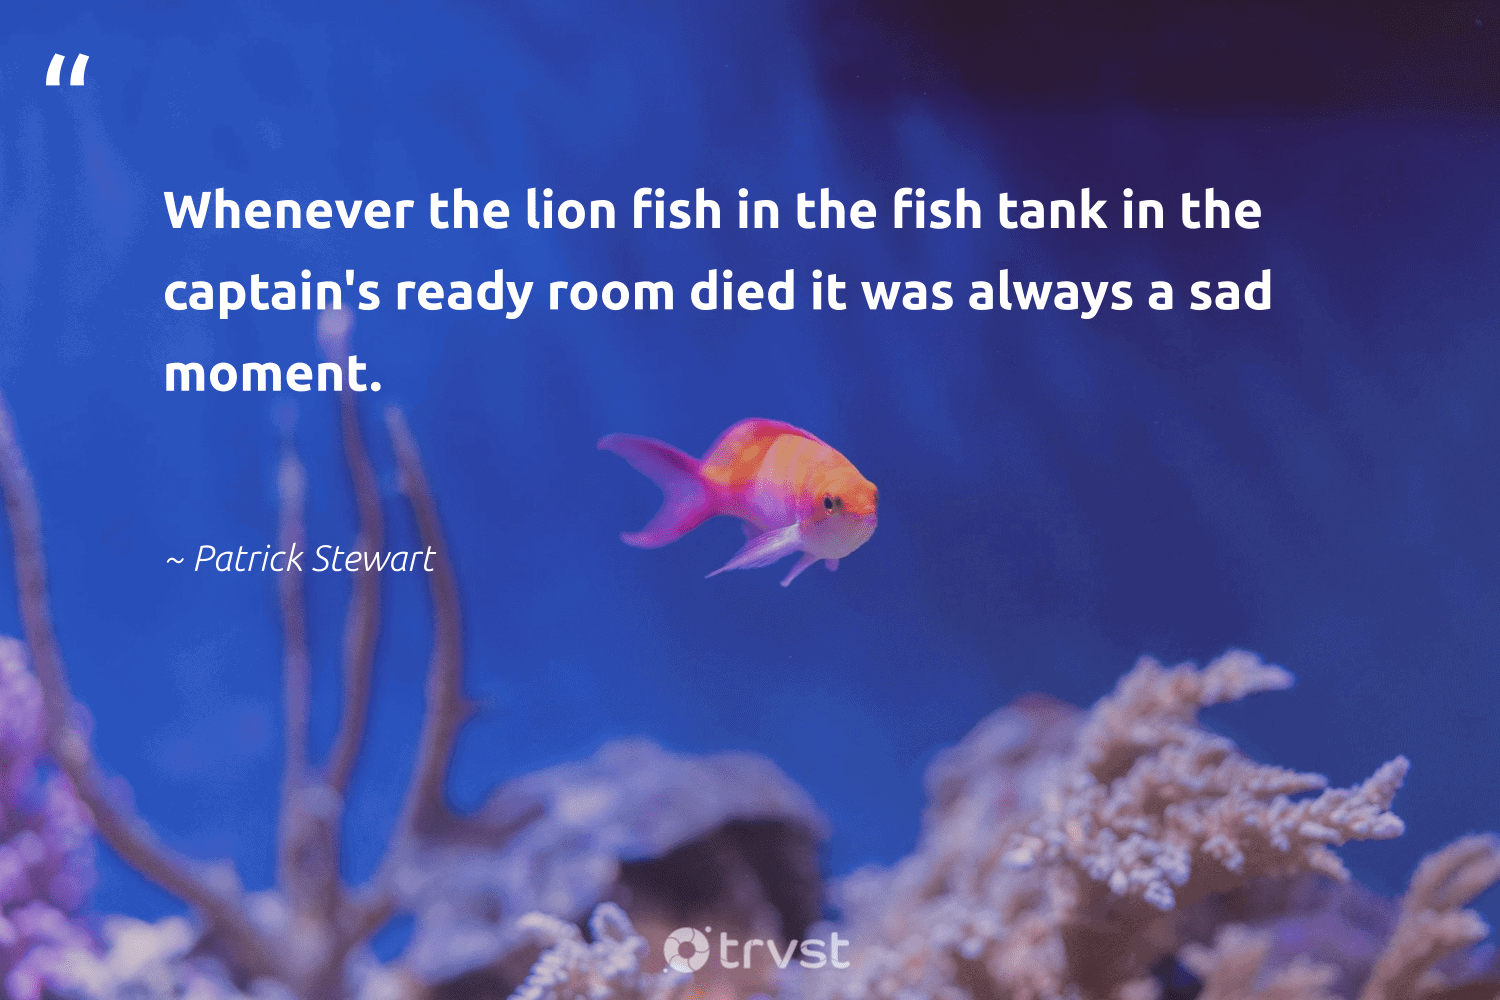 """""""Whenever the lion fish in the fish tank in the captain's ready room died it was always a sad moment.""""  - Patrick Stewart #trvst #quotes #fish #sustainablefishing #socialchange #marinelife #impact #biodiversity #bethechange #conservation #takeaction #healthyocean"""